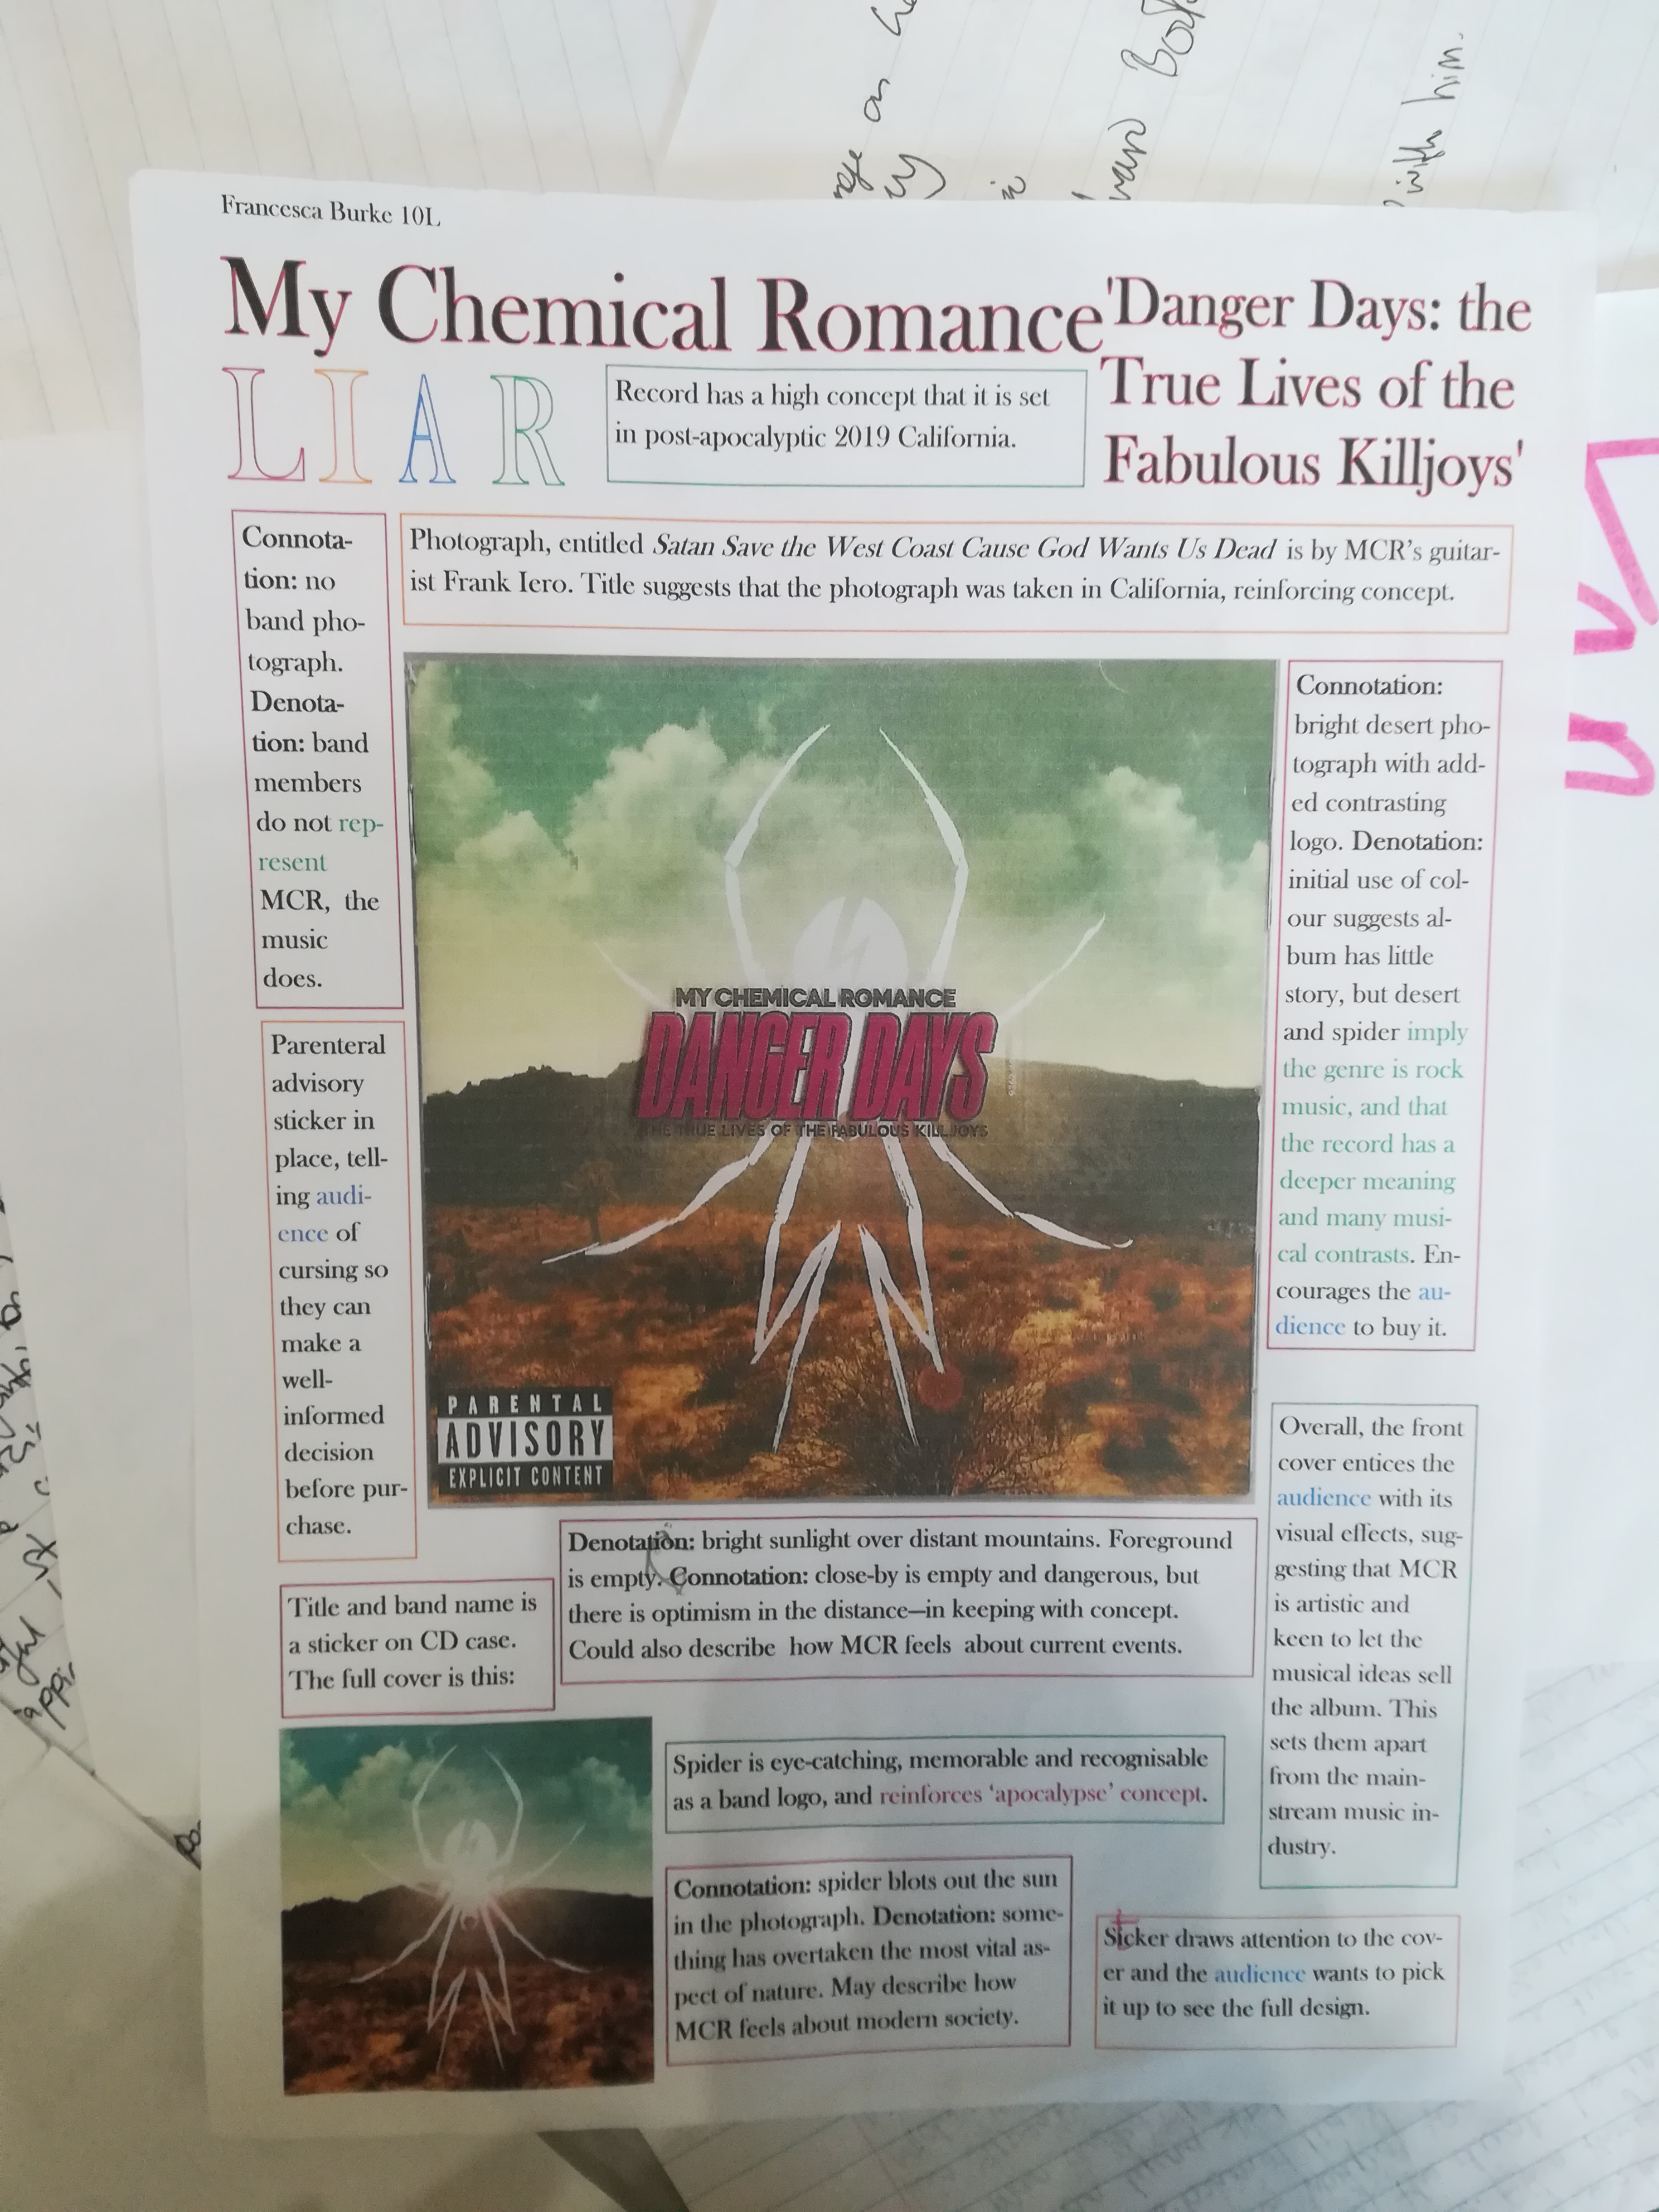 LIAR analysis and text around the cover of My Chemical Romance's album Danger Days: the True Lives of the Fabulous Killjoys'